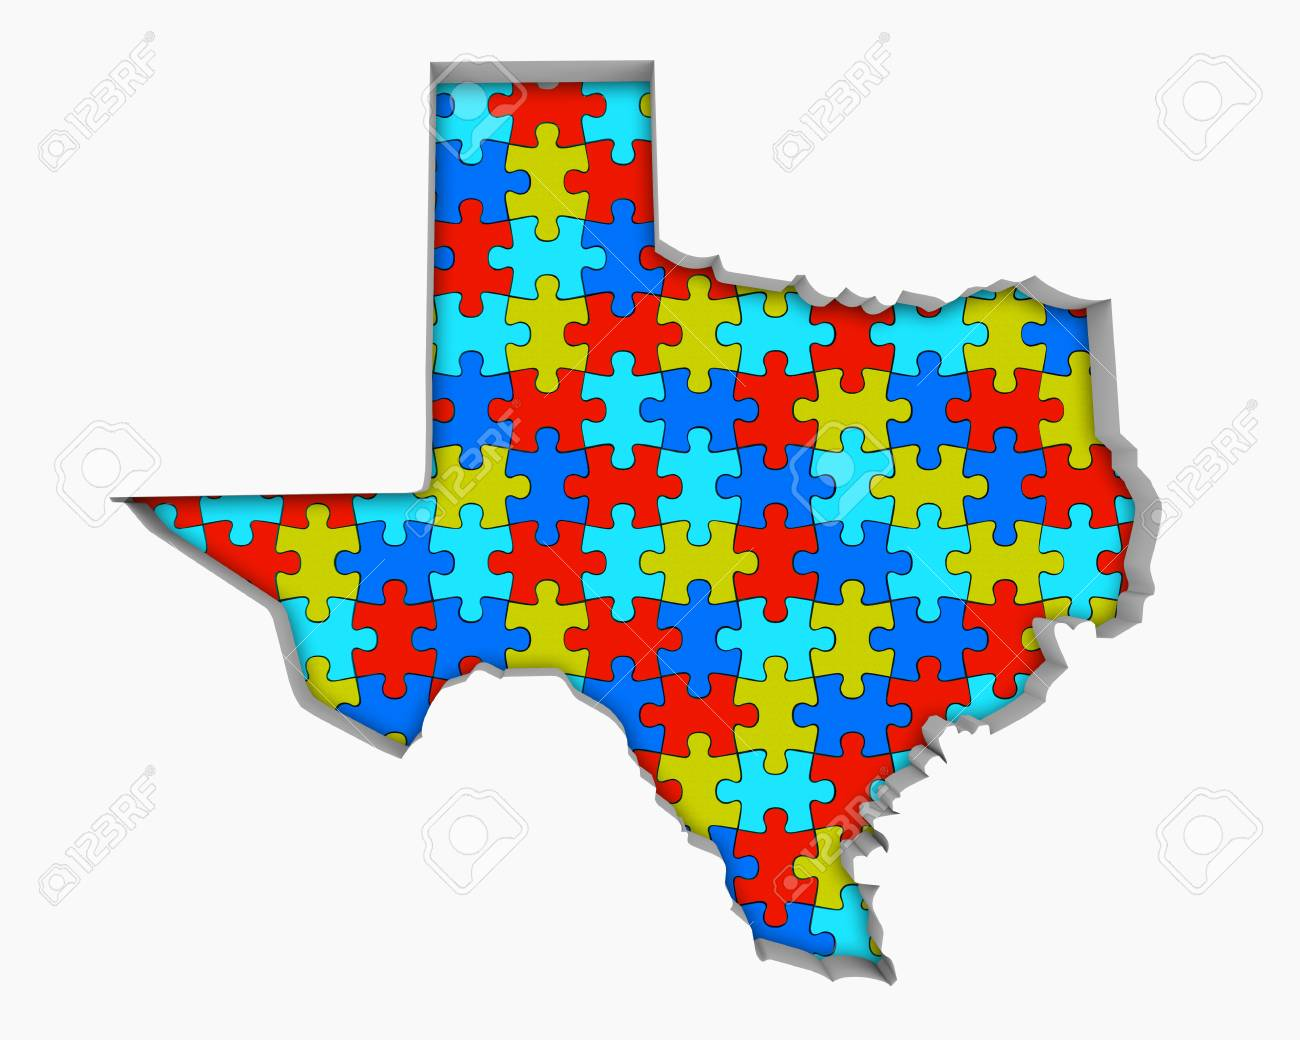 3d Map Of Texas.Stock Illustration